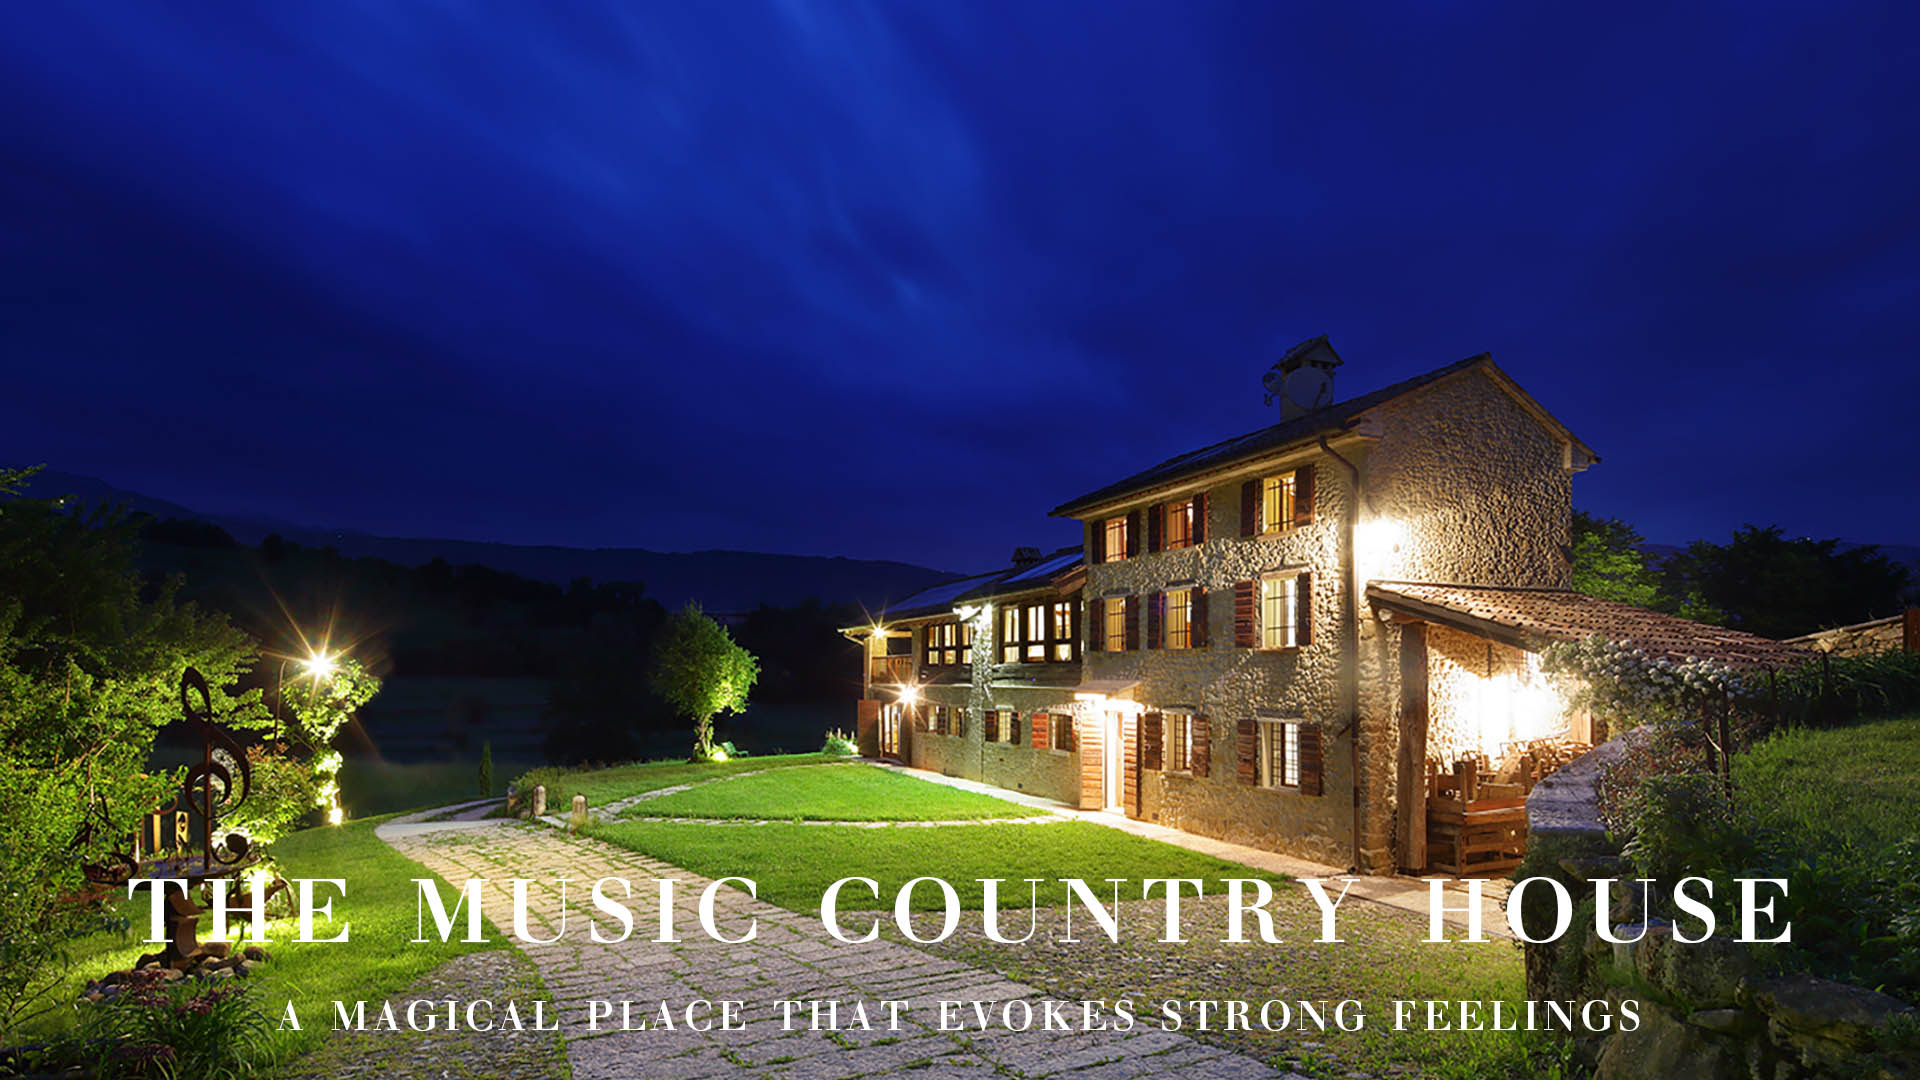 The Music Country House